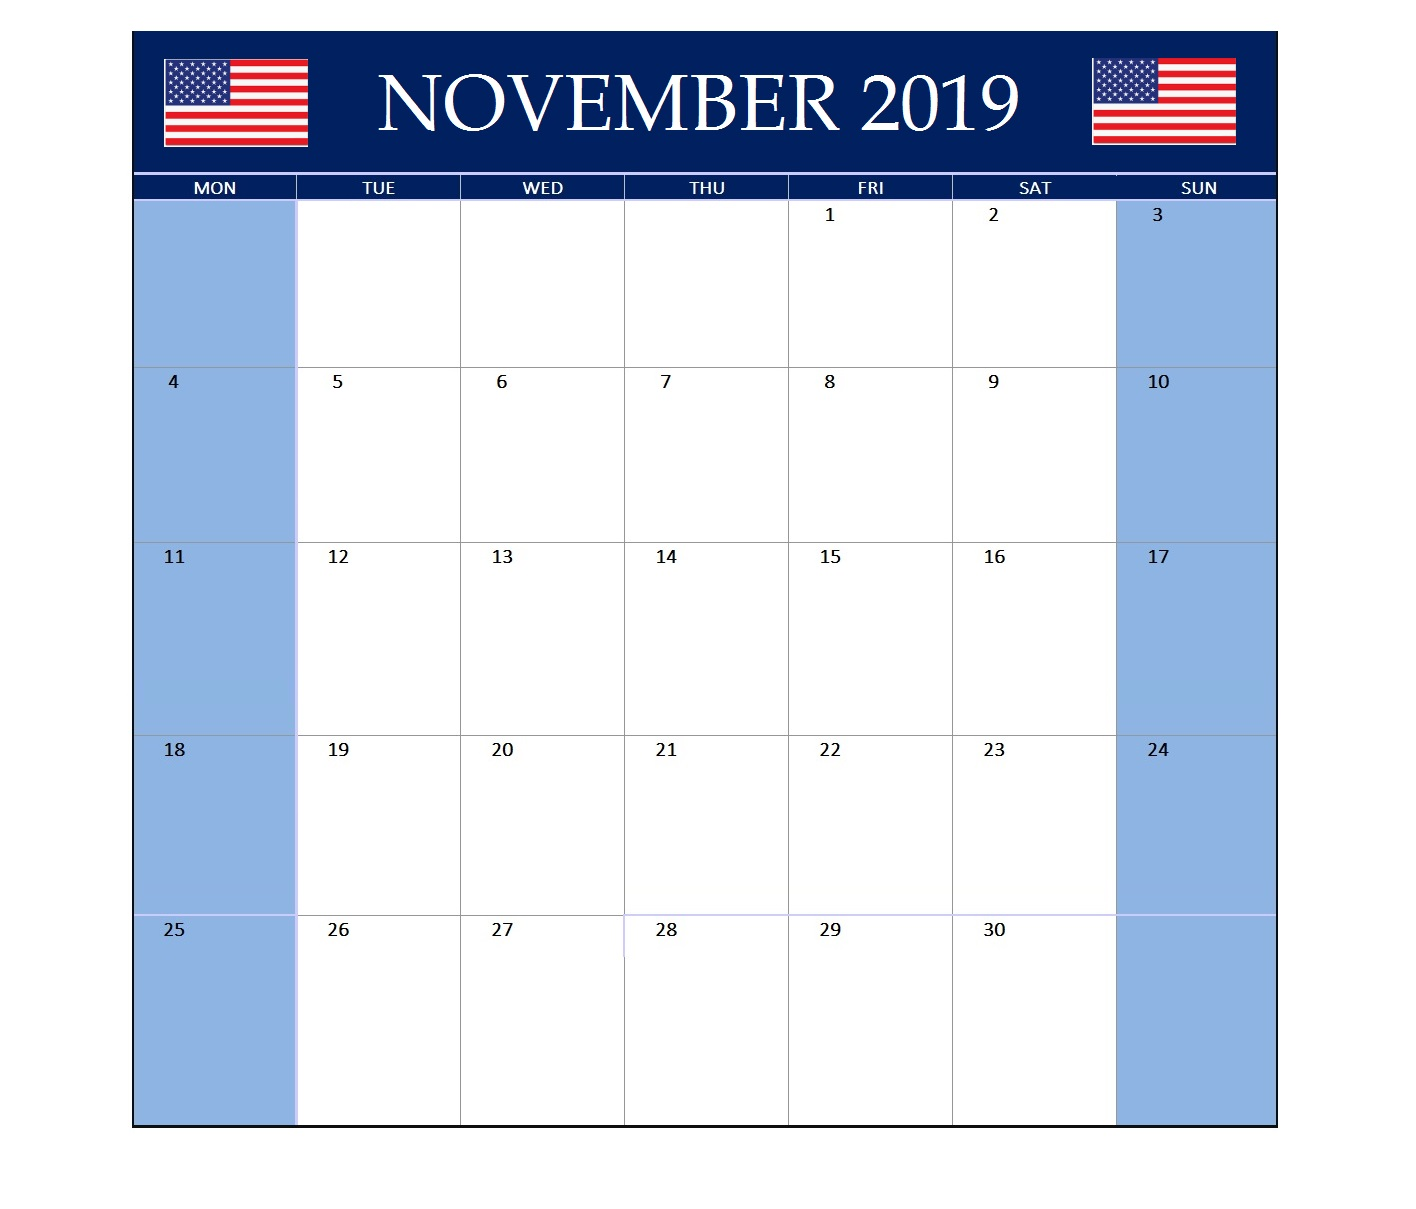 November 2019 United States Holidays Calendar